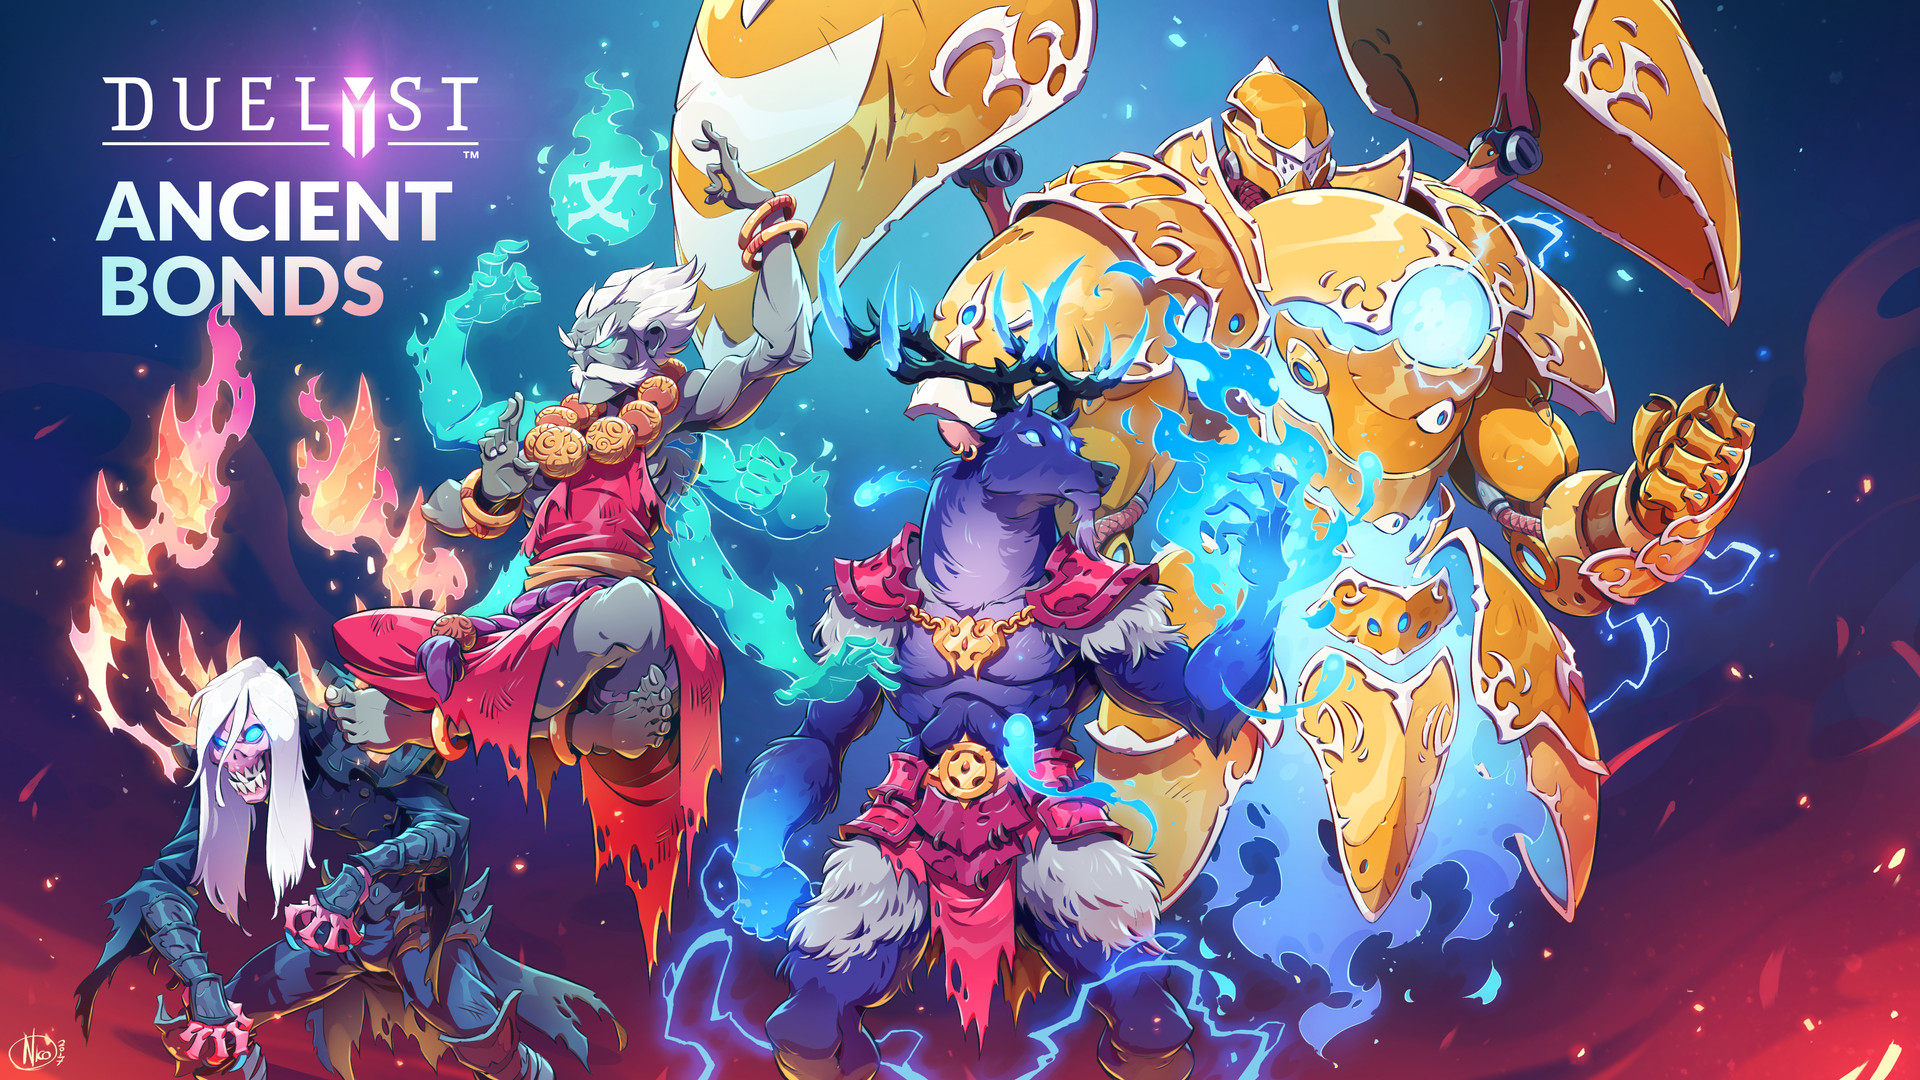 Duelyst_digital_painting_characters_characterdesign_ancientbonds